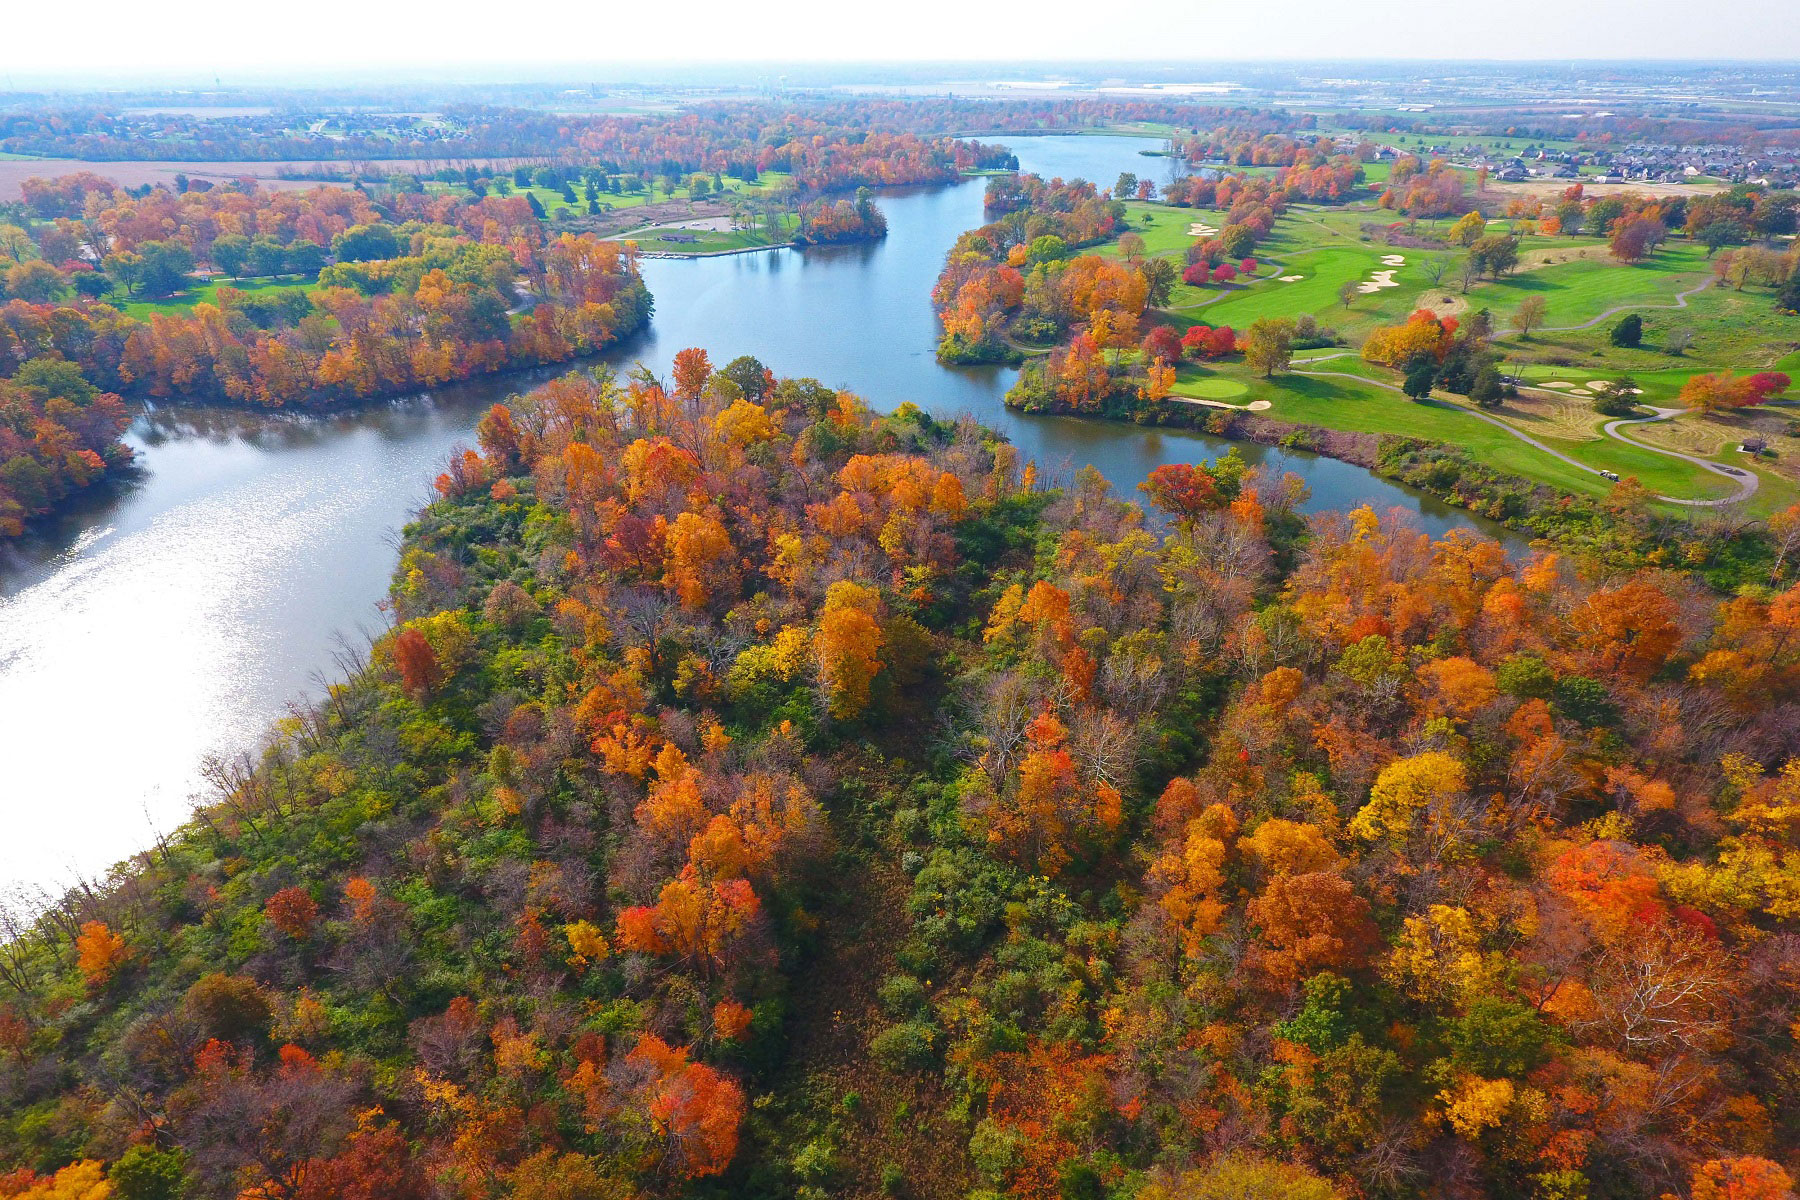 Trails of Shaker Run Woods Aerial